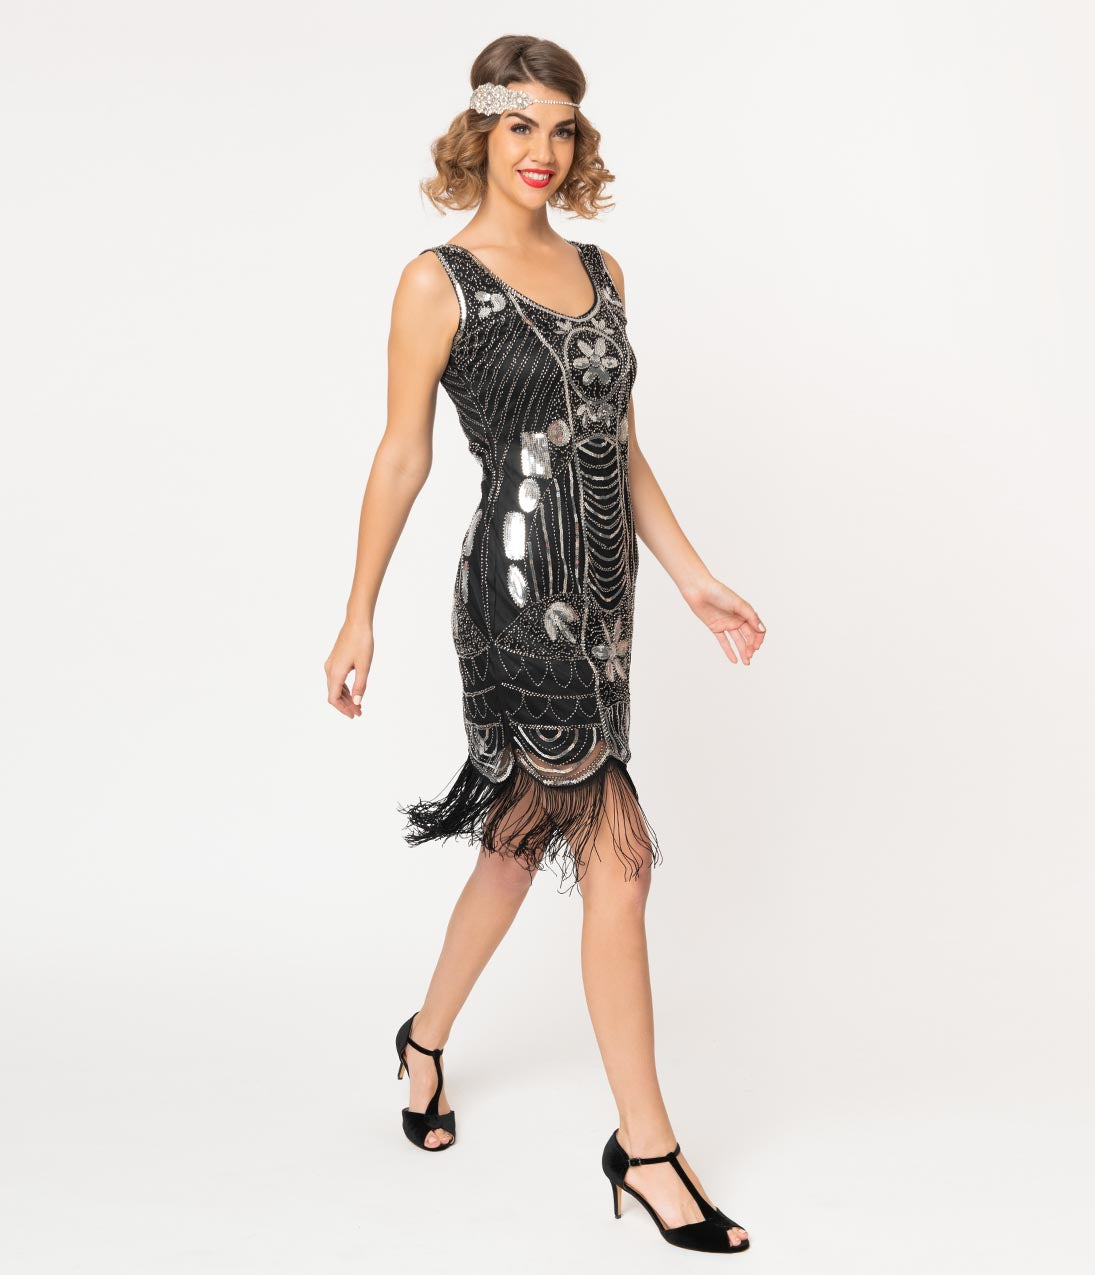 Charleston Dress: Fringe Flapper Dress Unique Vintage Black  Silver Sequin Fringe Cremieux Flapper Dress $98.00 AT vintagedancer.com